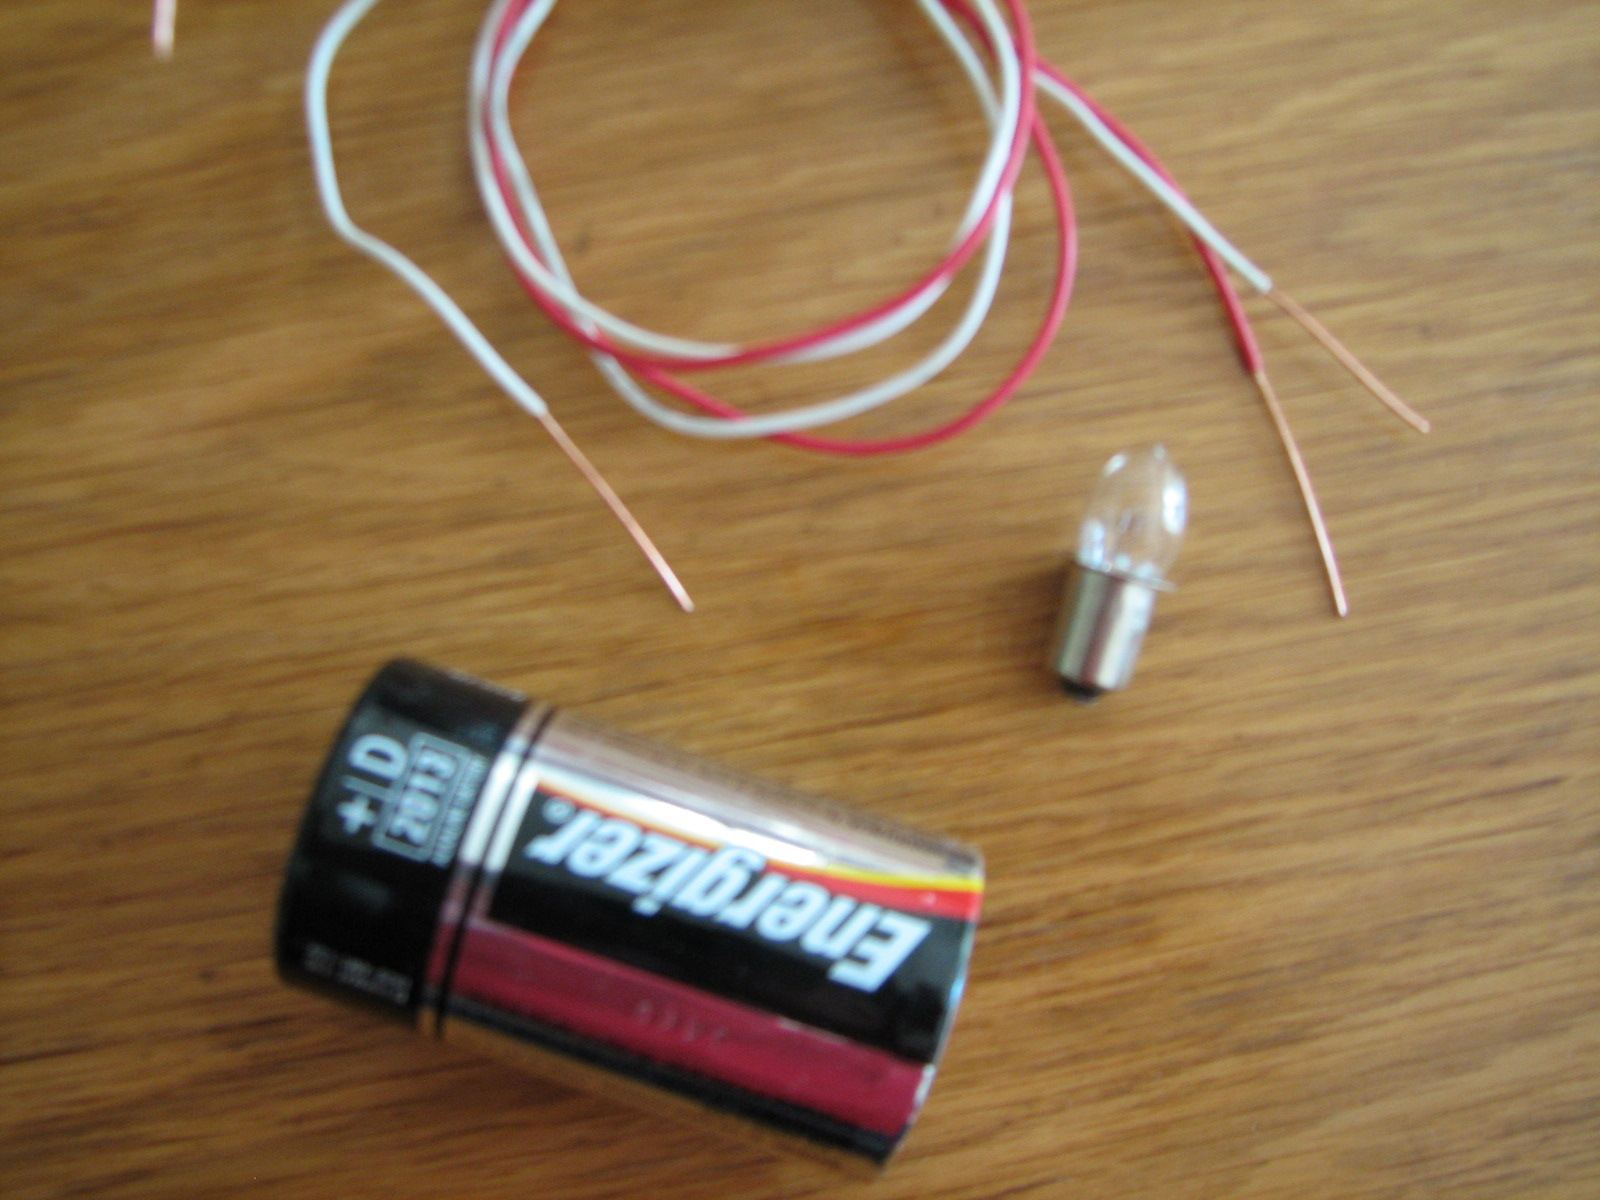 Science Matters Electricity Light A Lightbulb Electric Circuit You Make In This Project Is Simple